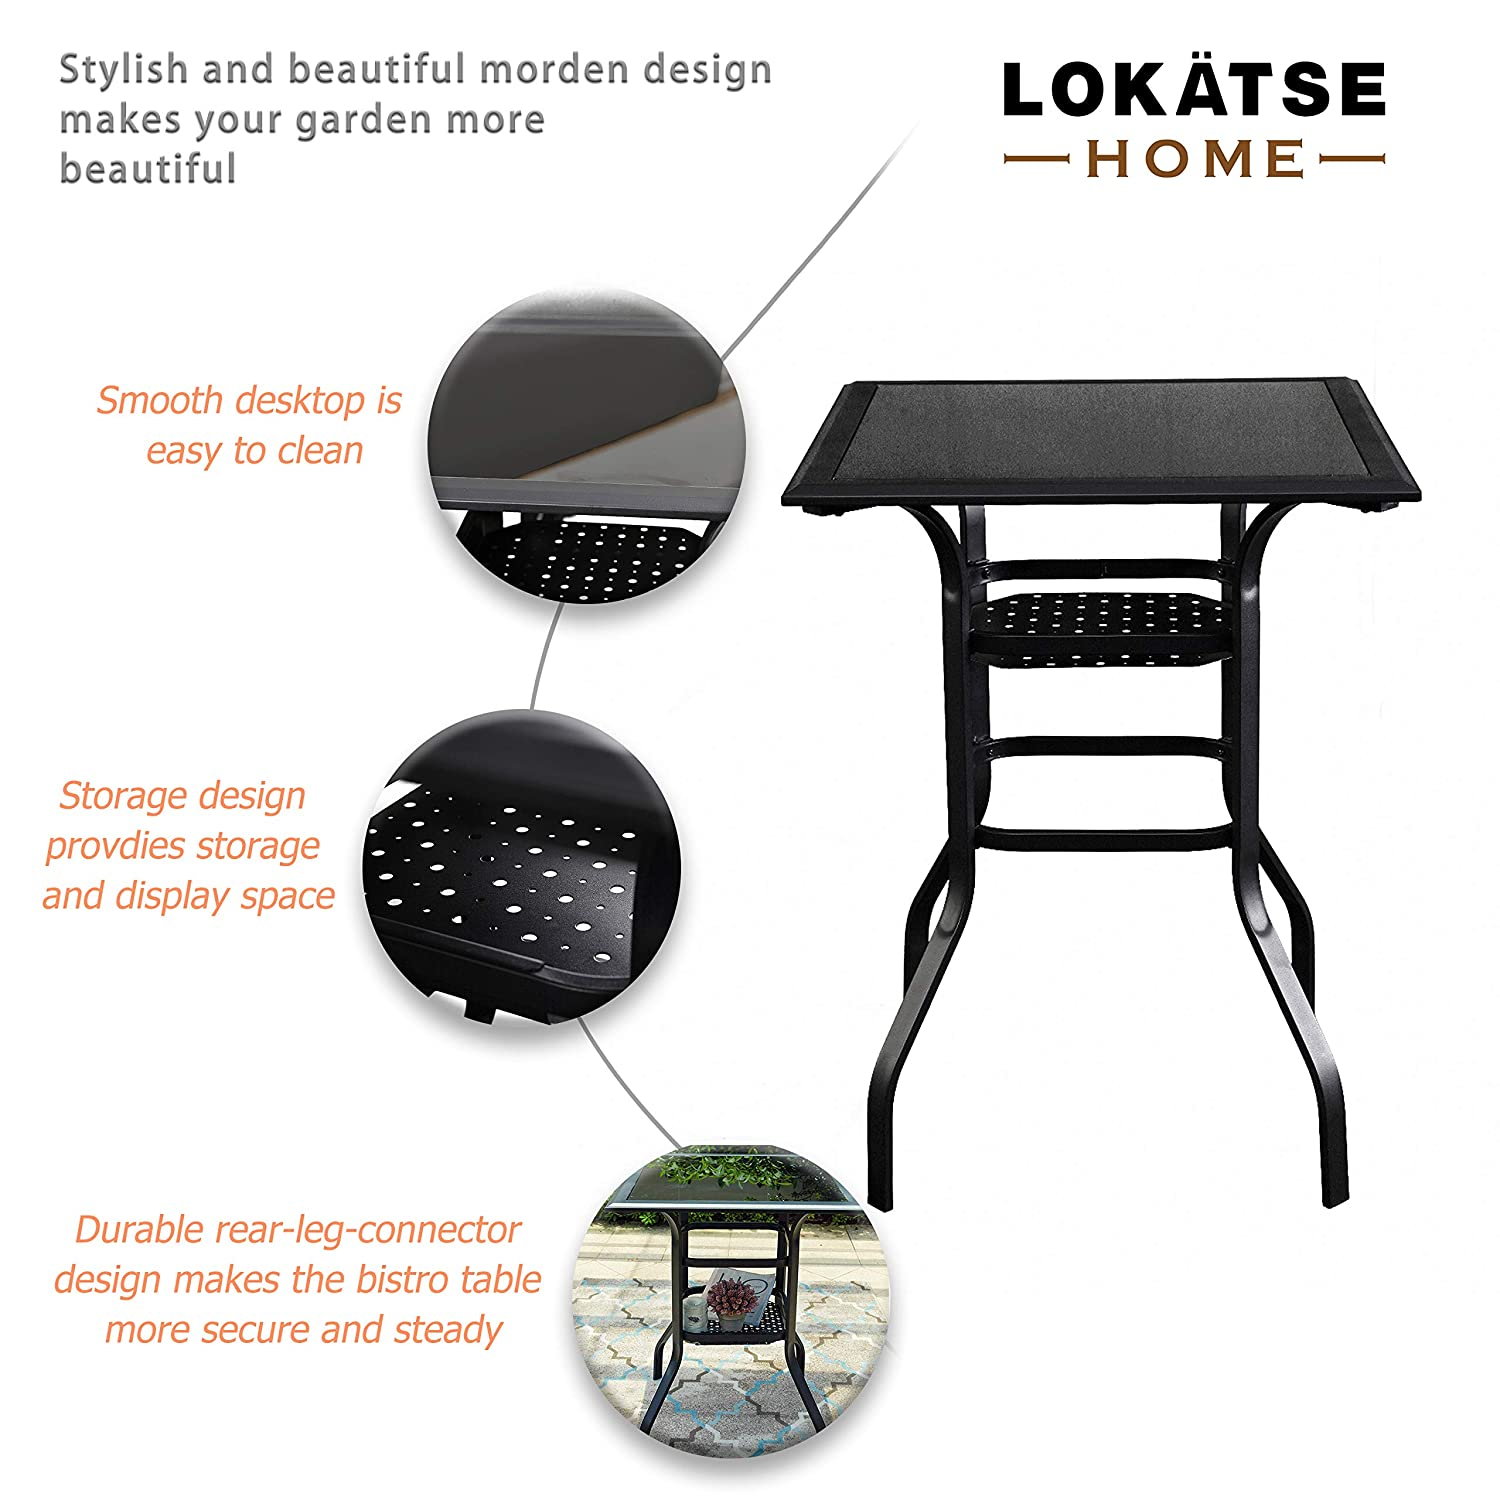 LOKATSE HOME High Outdoor Patio Bar Height Glass Top Table, Black